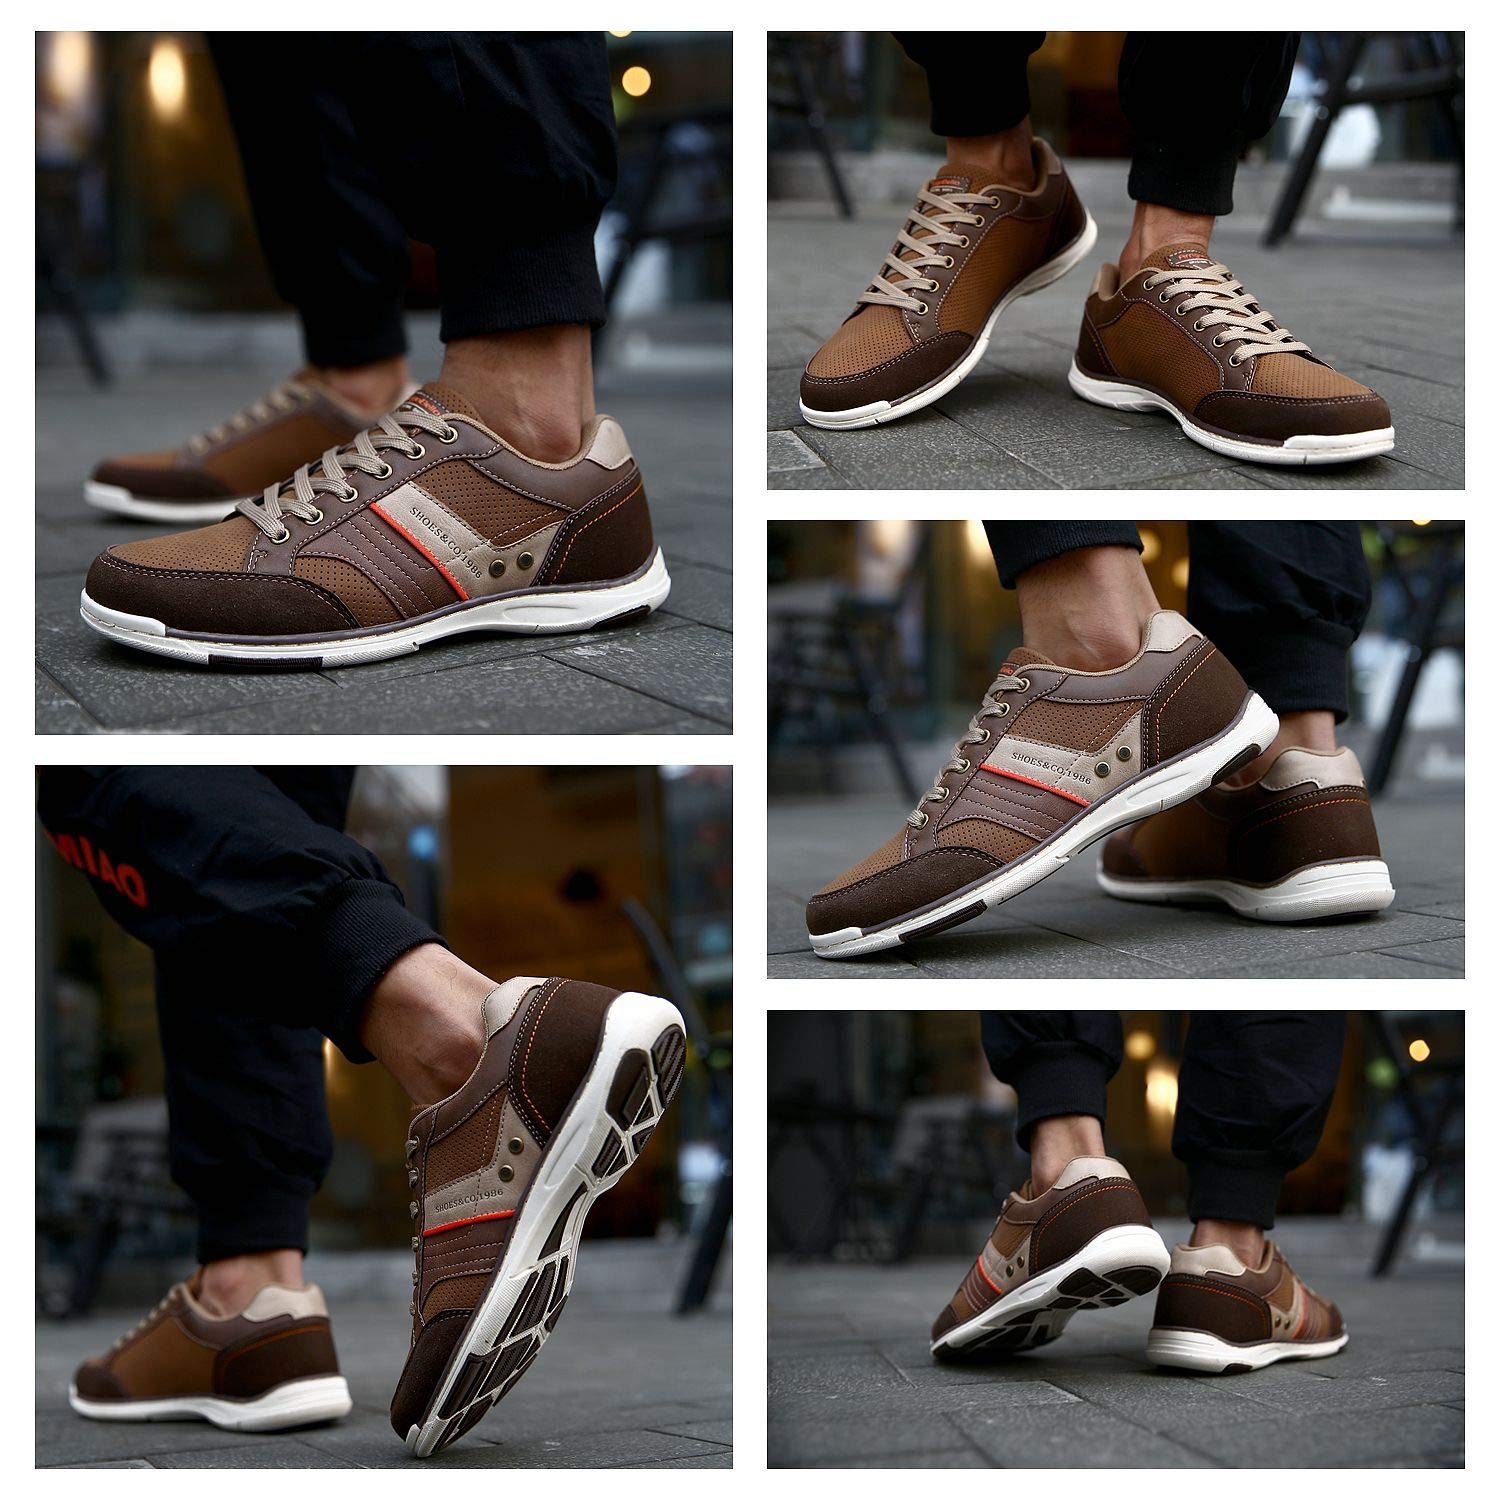 9 UK, A9099-brown AX BOXING Mens Casual Shoes Trainers Shoes Multisport Running Walking Gym Shoe Sport Mens Sneakers /…